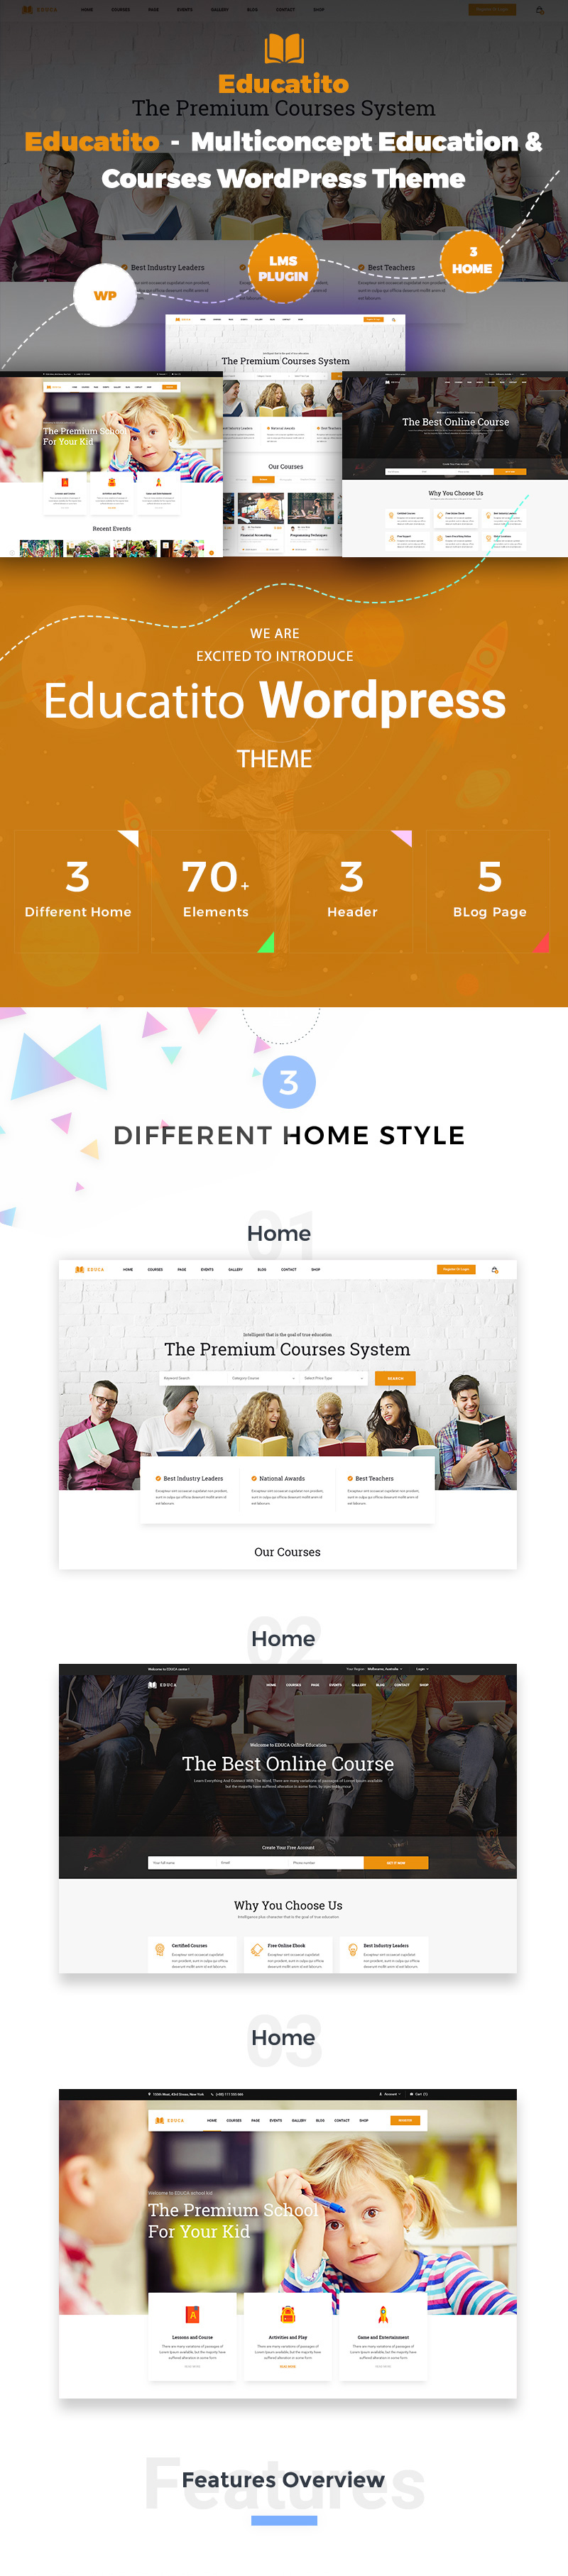 Educatito | Multiconcept Education & Courses WordPress Theme - 2